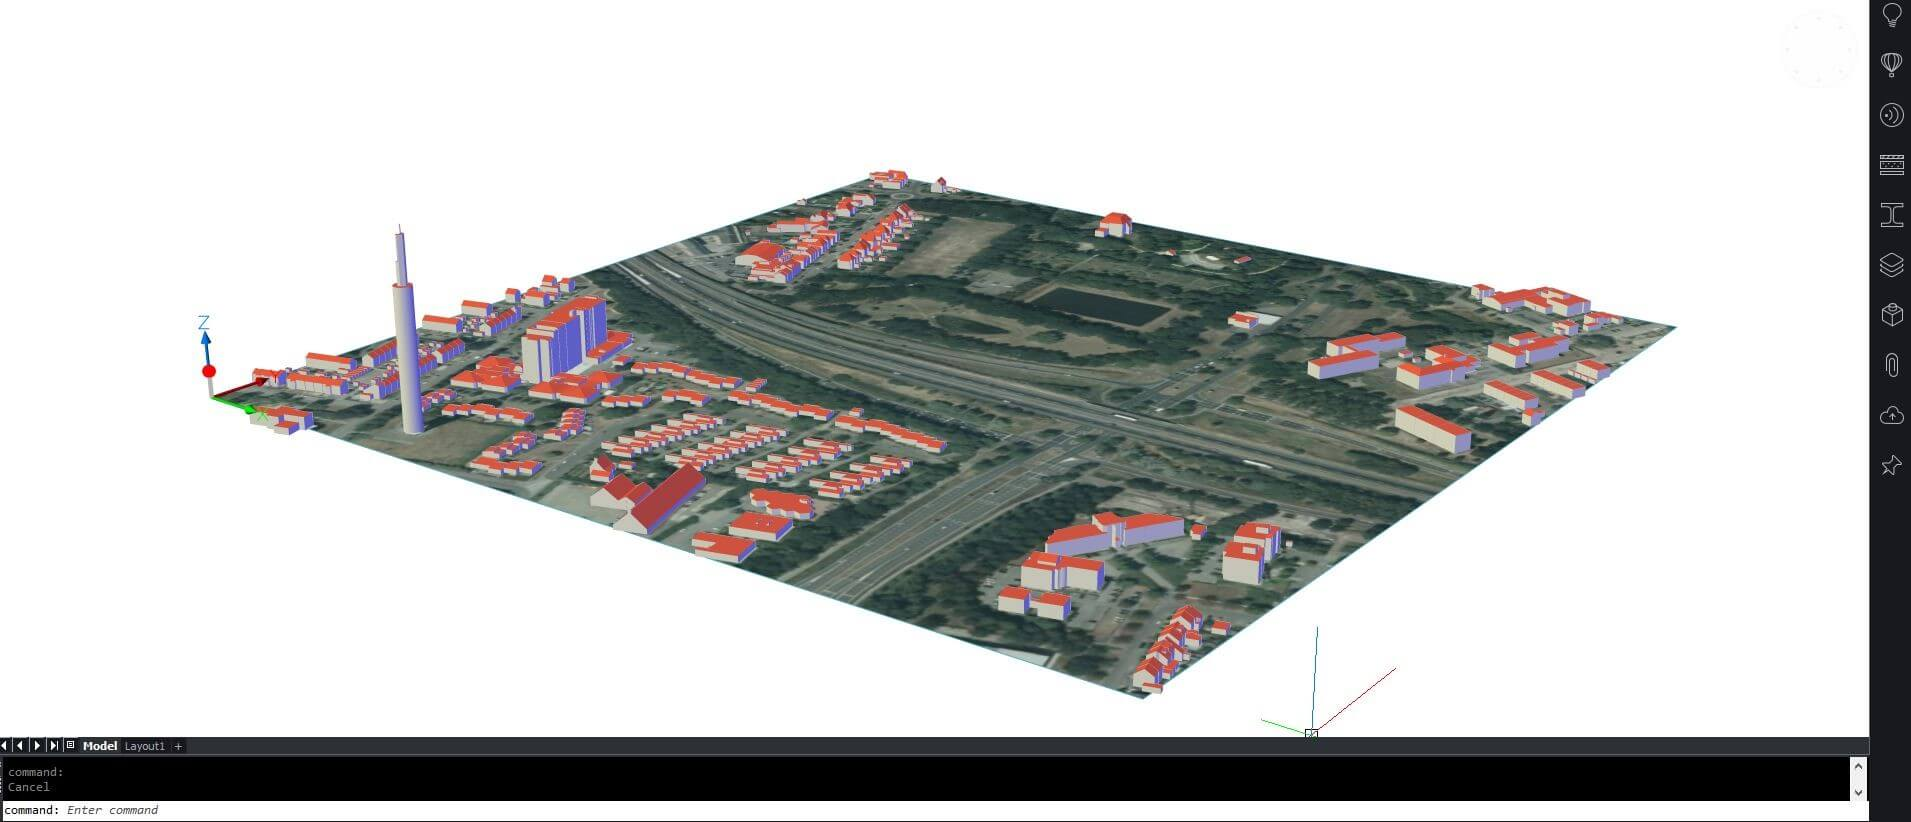 GIs data model with rendered image on TIn surface and buildings